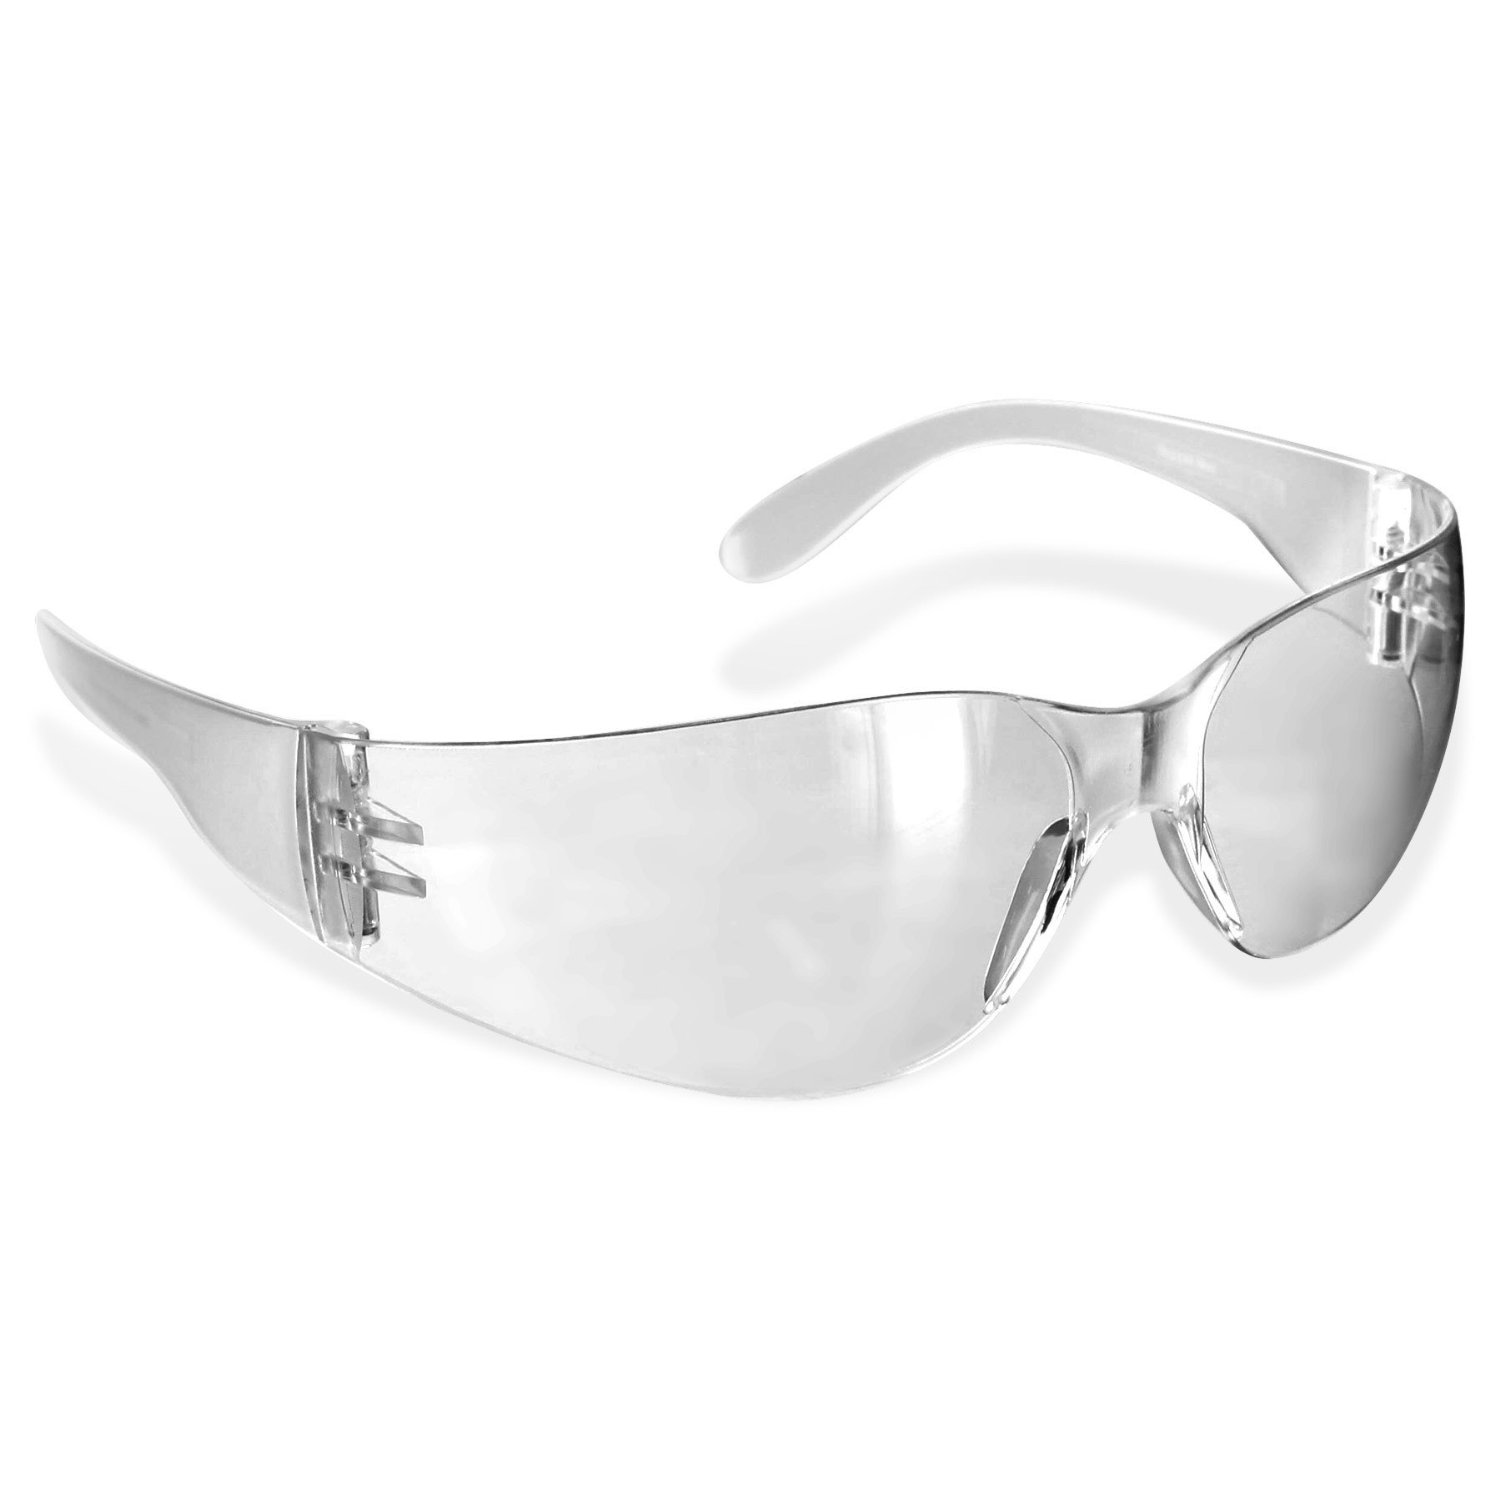 12 pack safety glasses in smoke, clear or amber